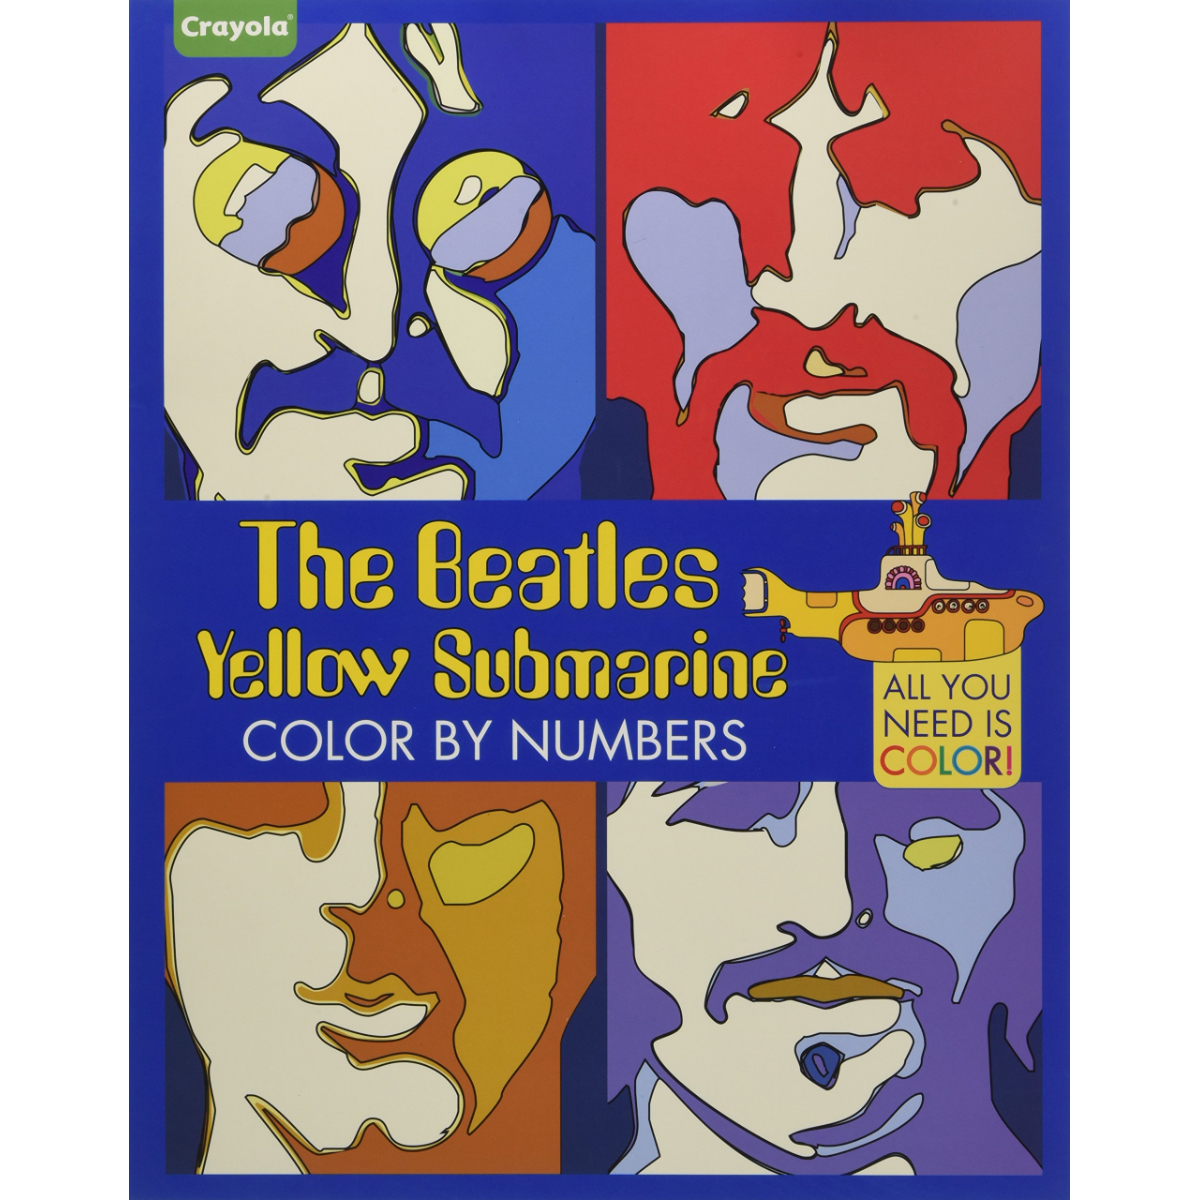 The Beatles: Yellow Submarine Color by Numbers